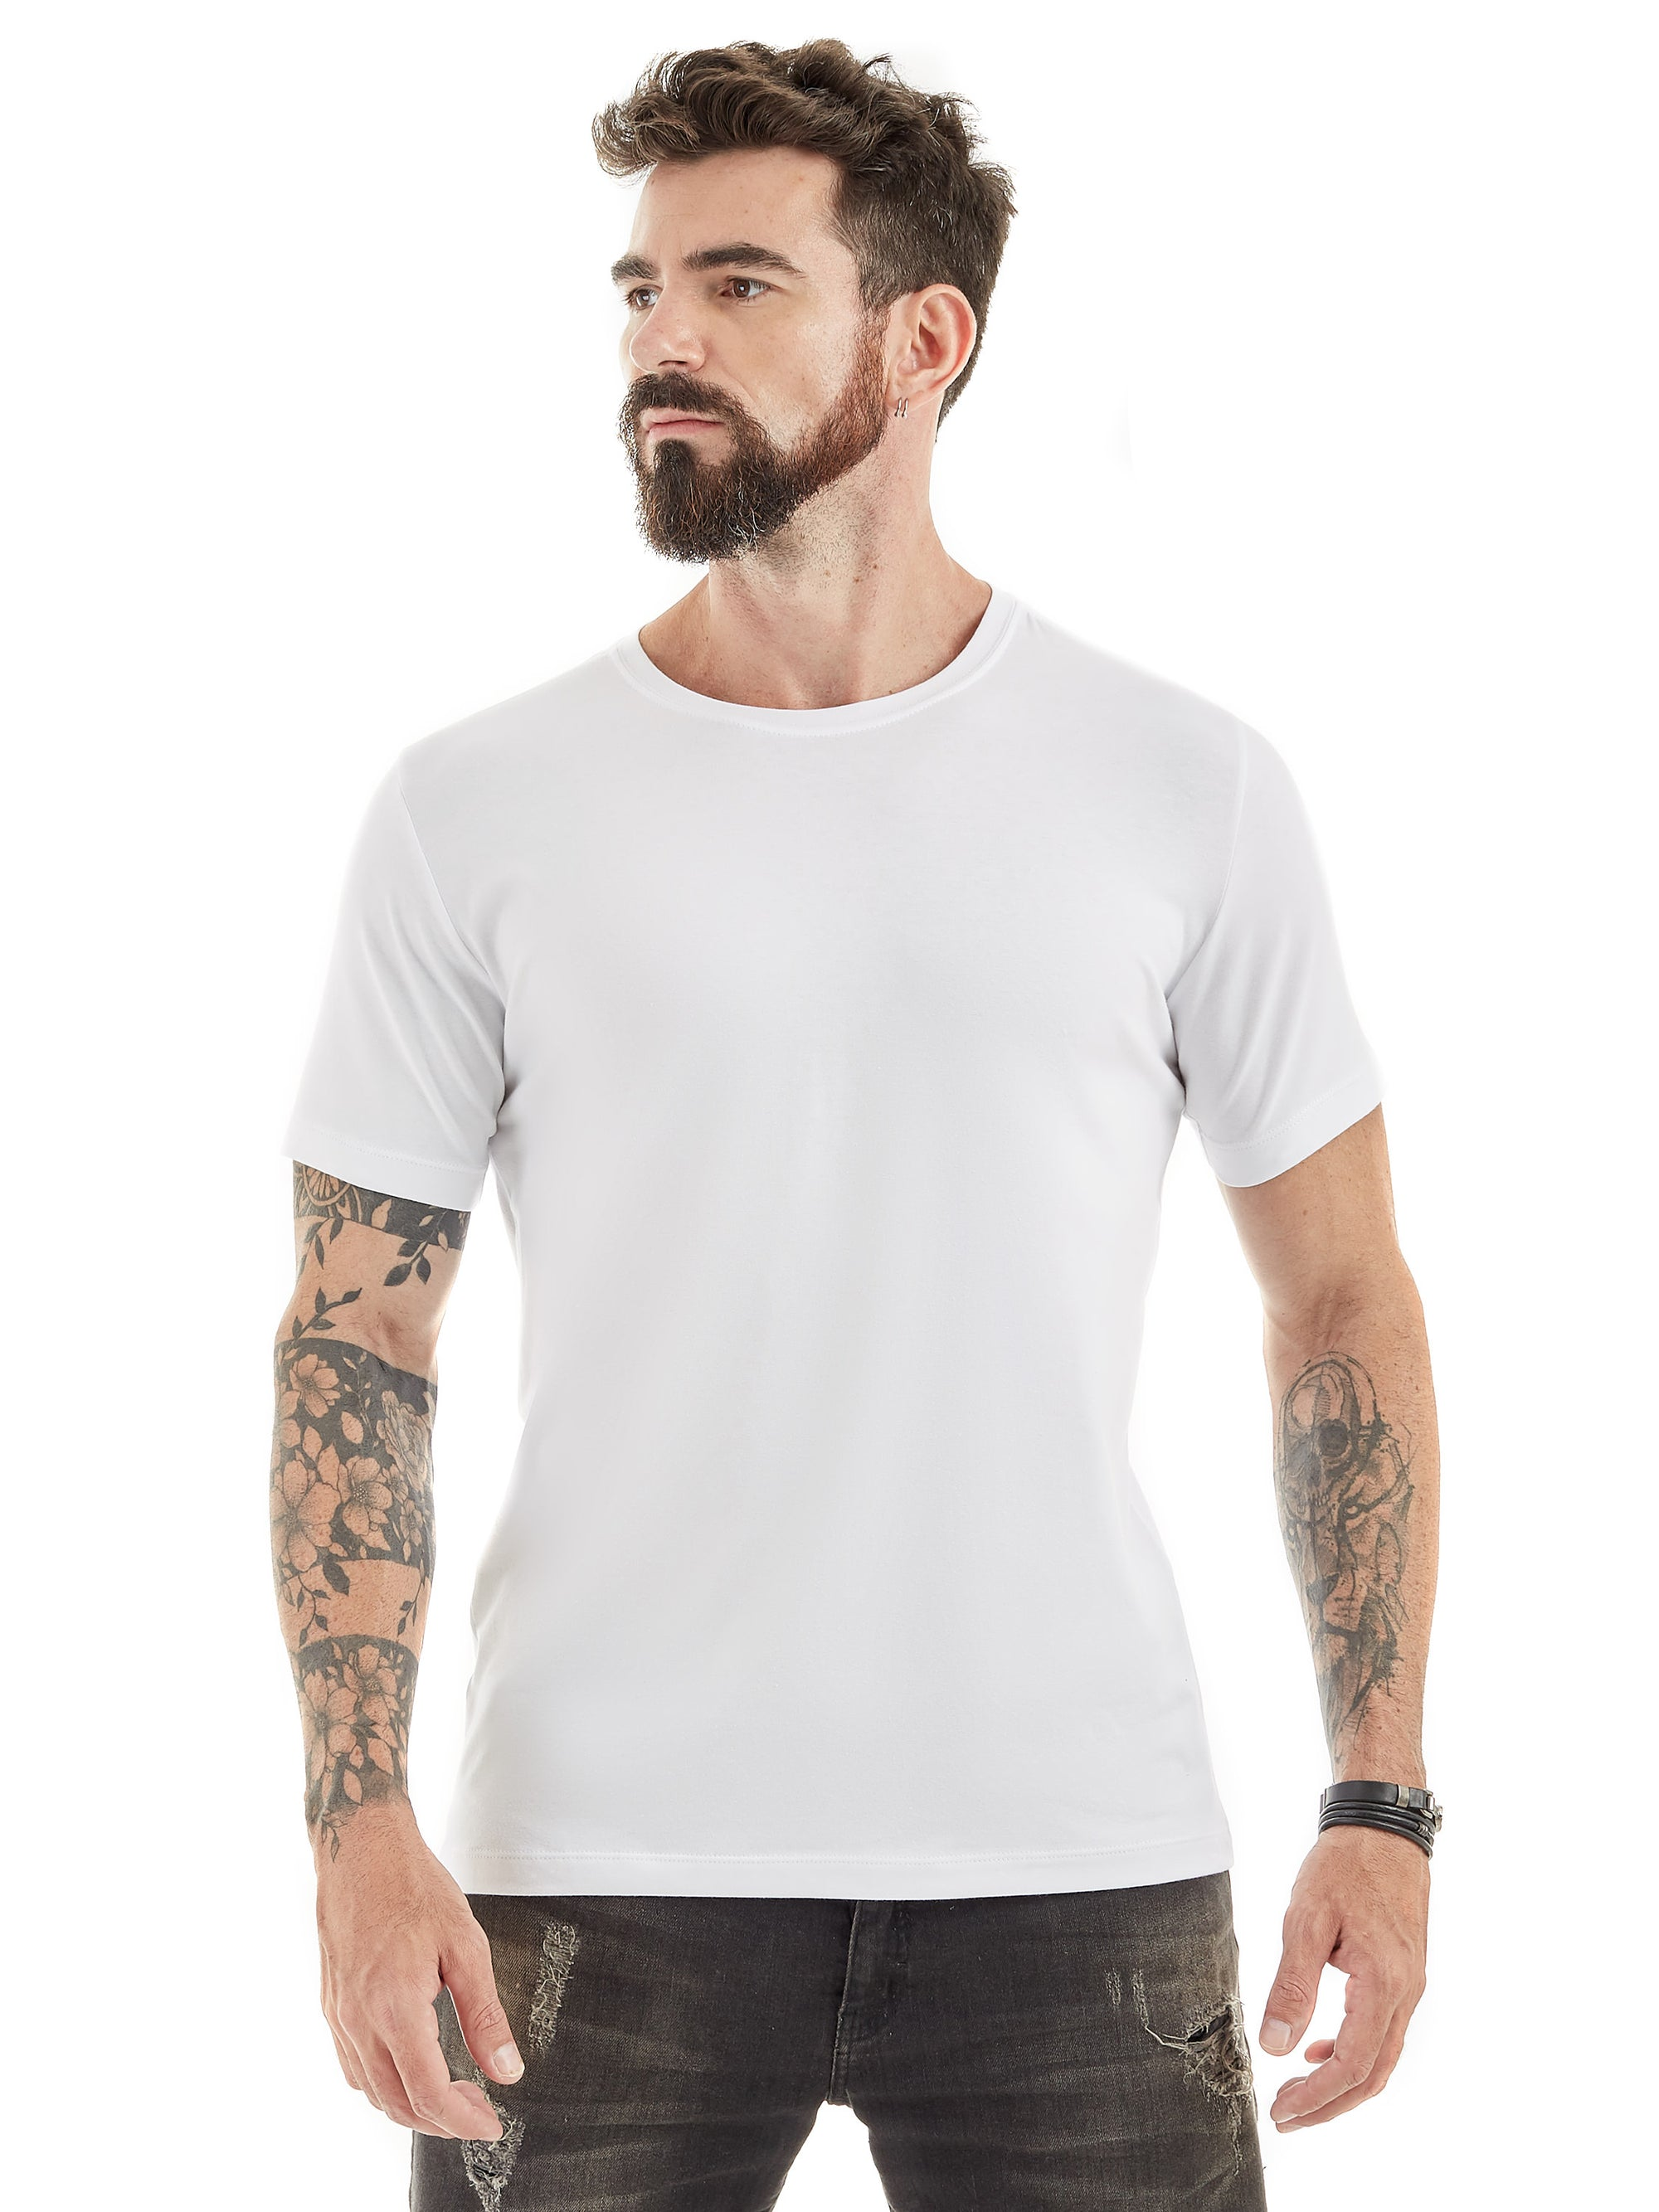 Camiseta masculina All White